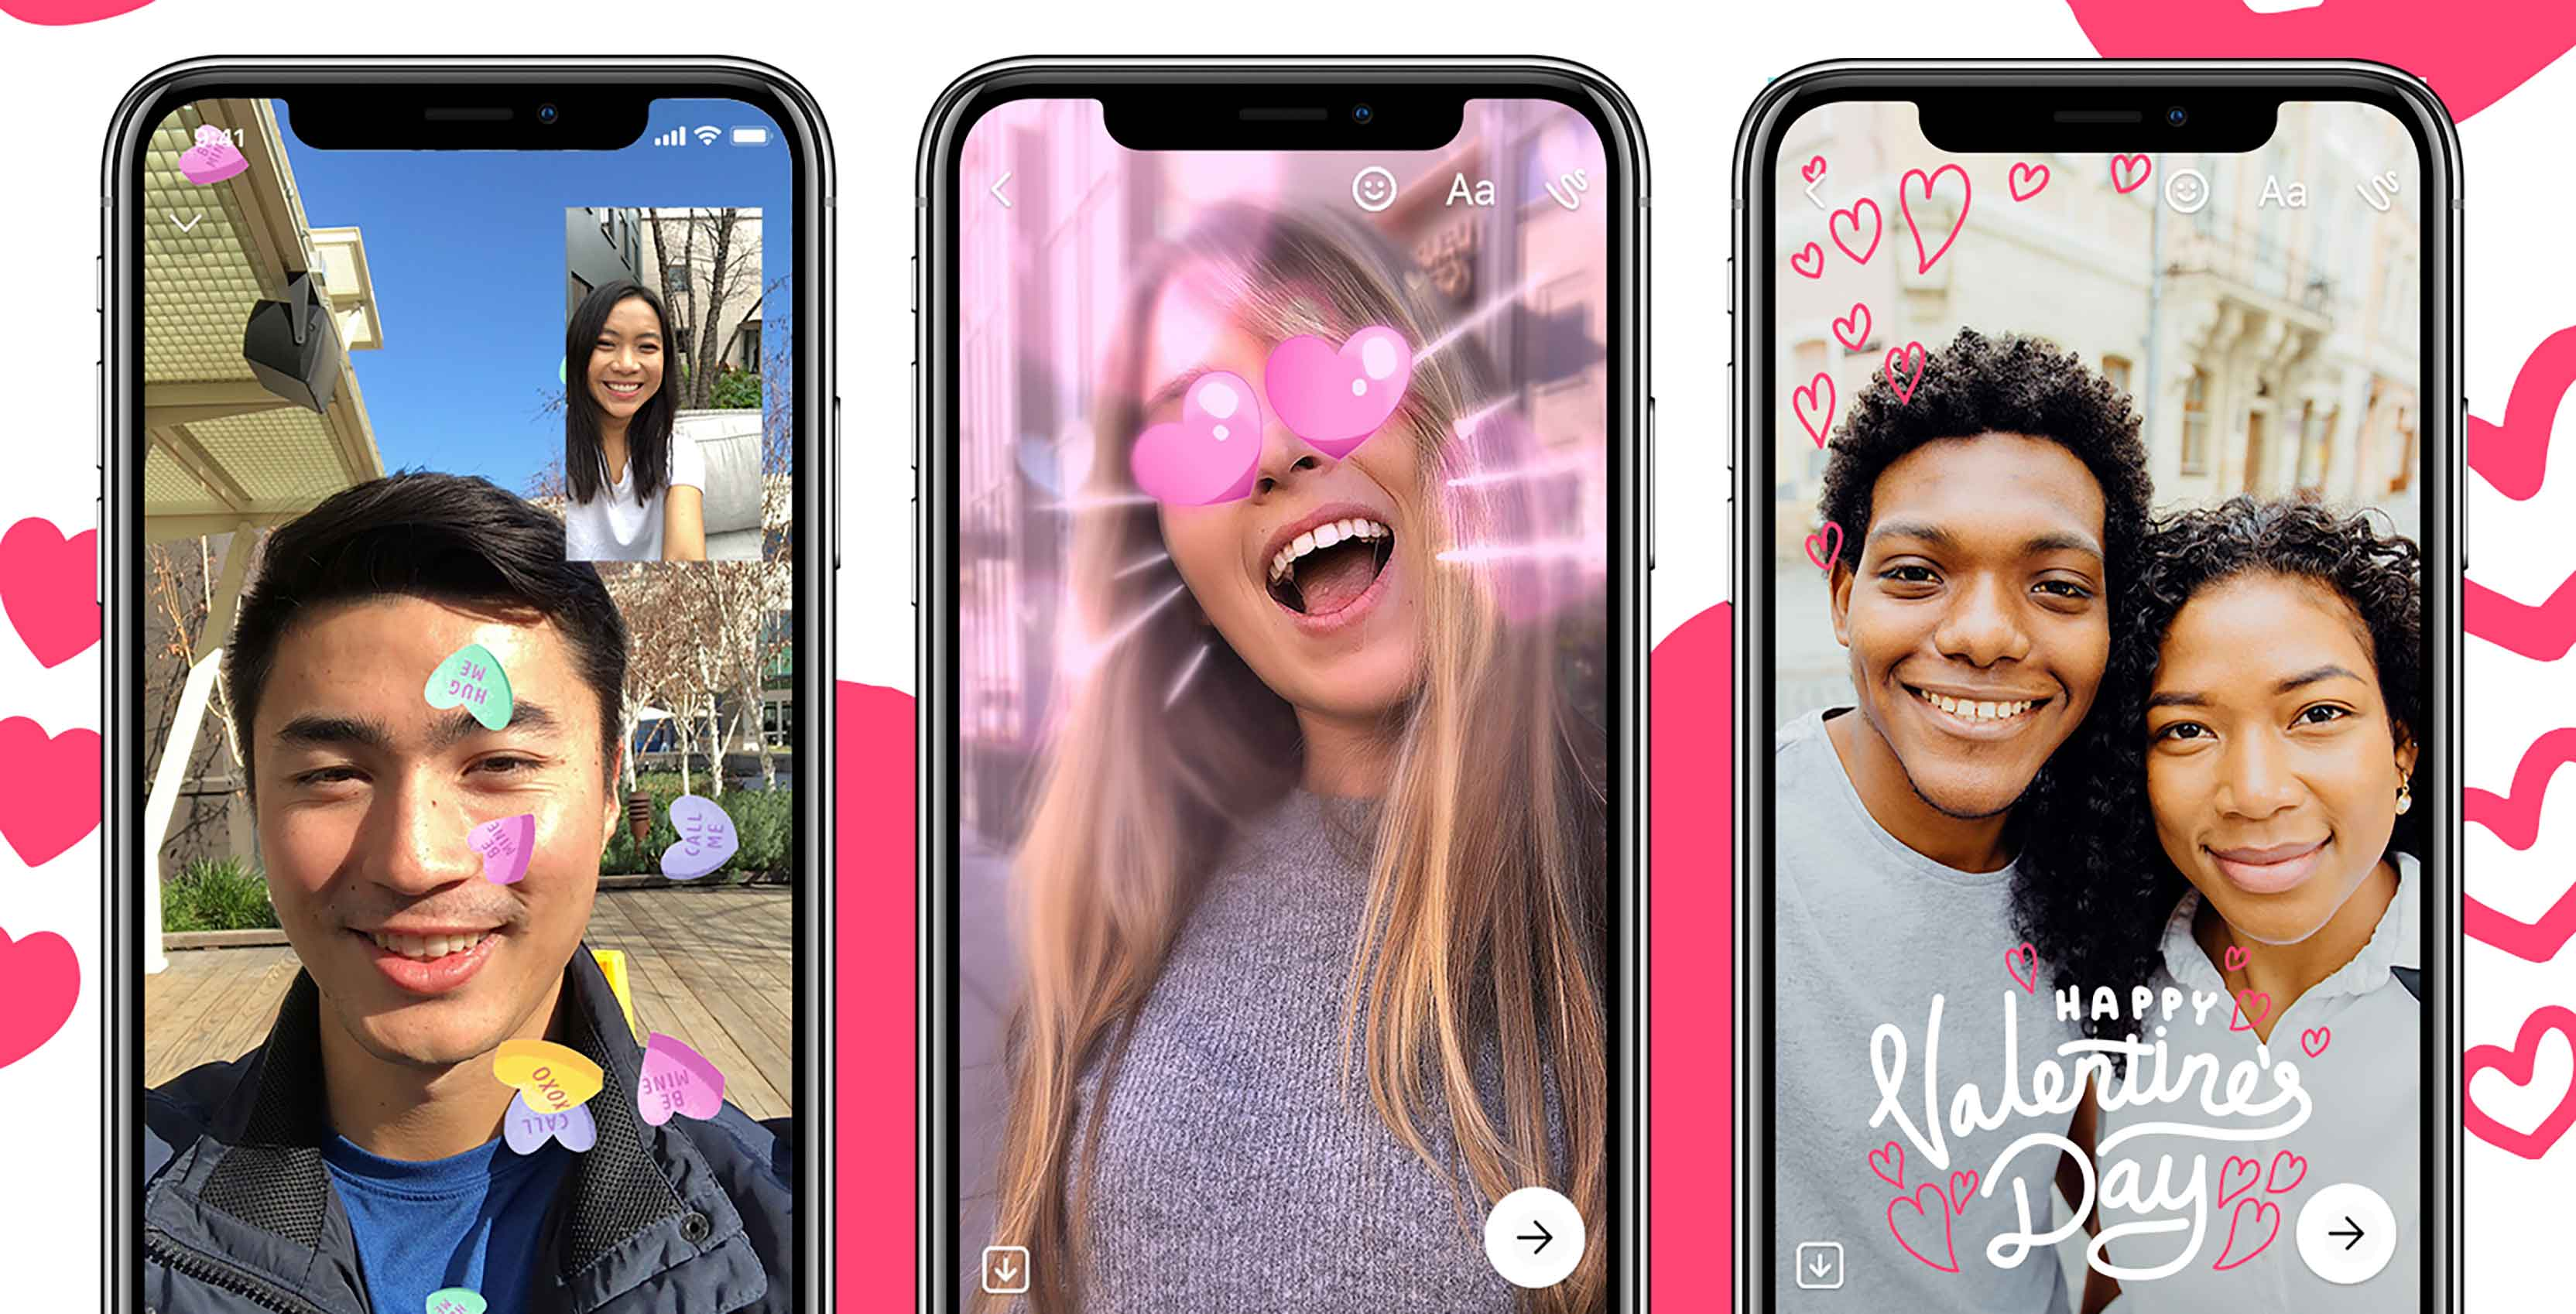 Express love with Messenger this Valentine's Day